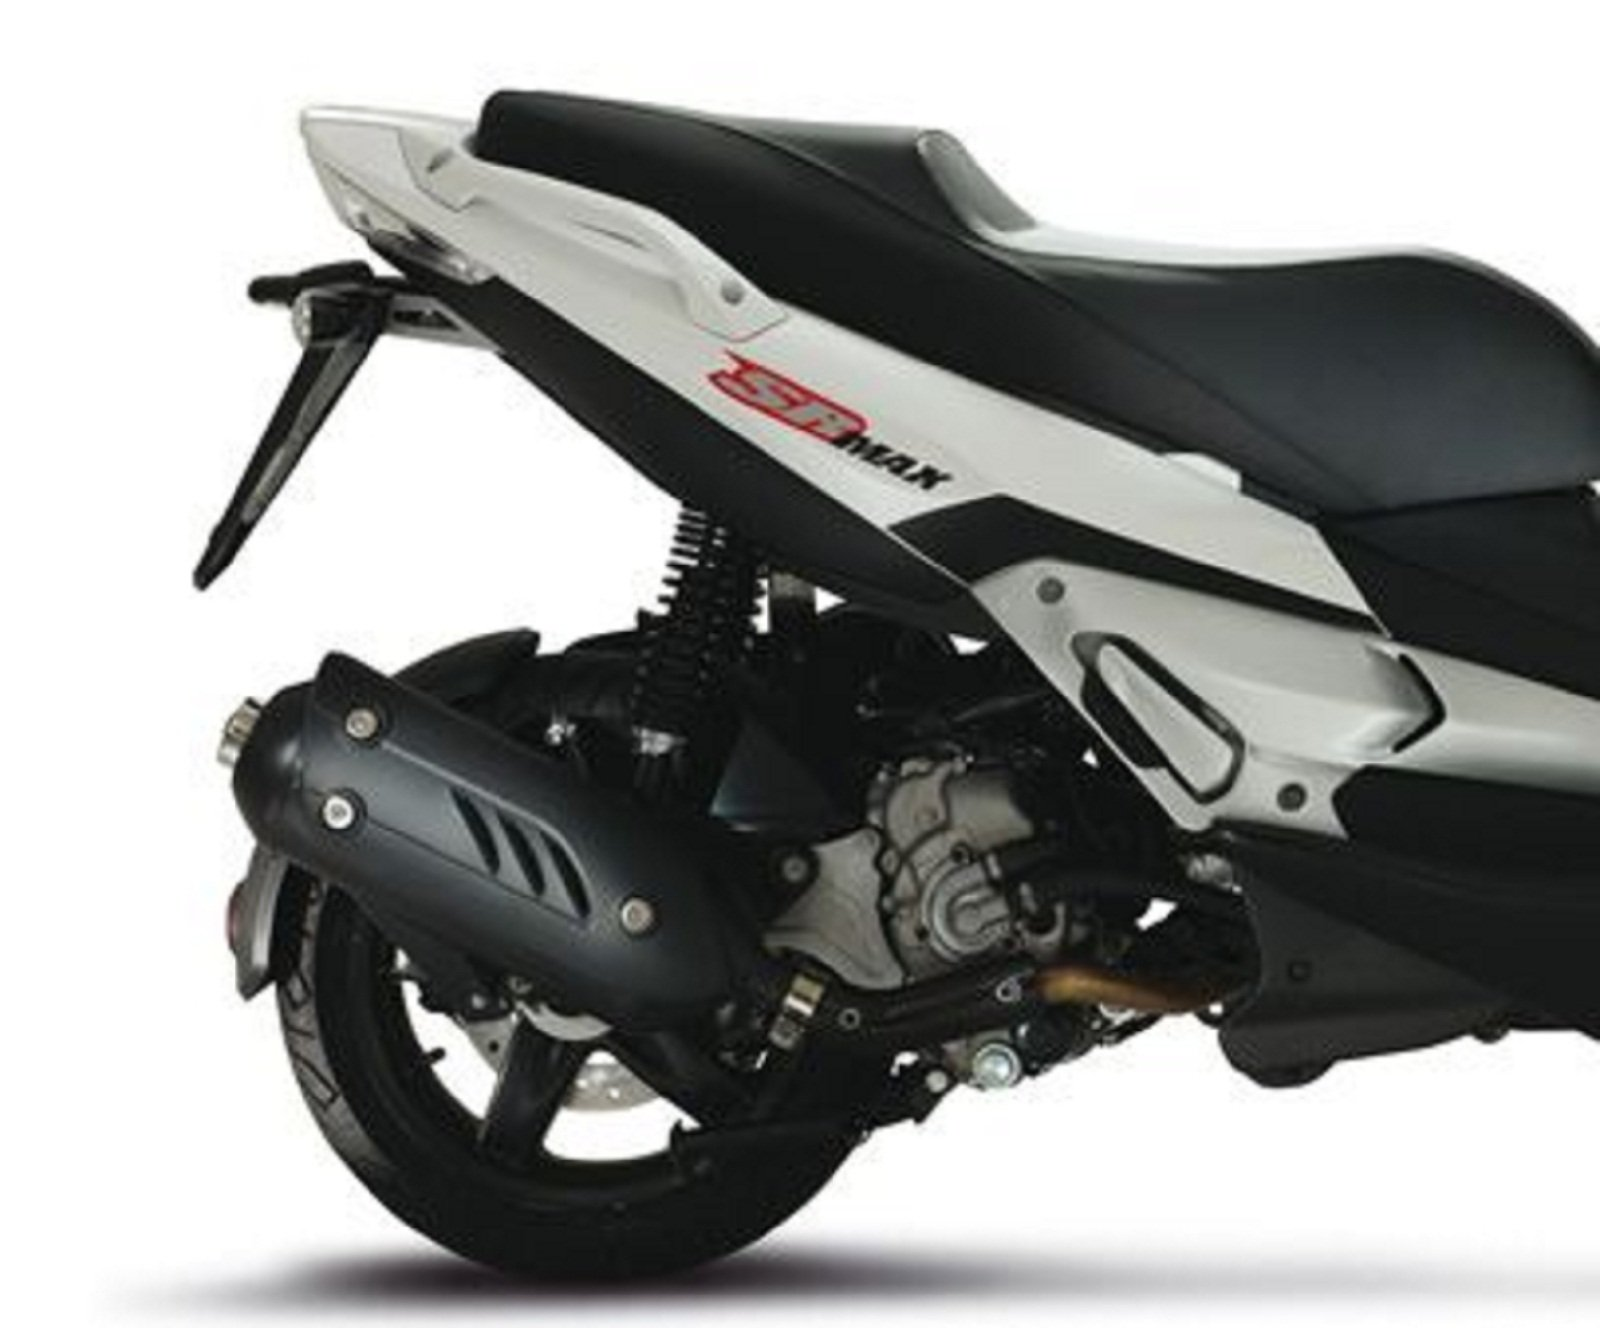 2012 aprilia sr max 125 picture 439357 motorcycle review top speed. Black Bedroom Furniture Sets. Home Design Ideas